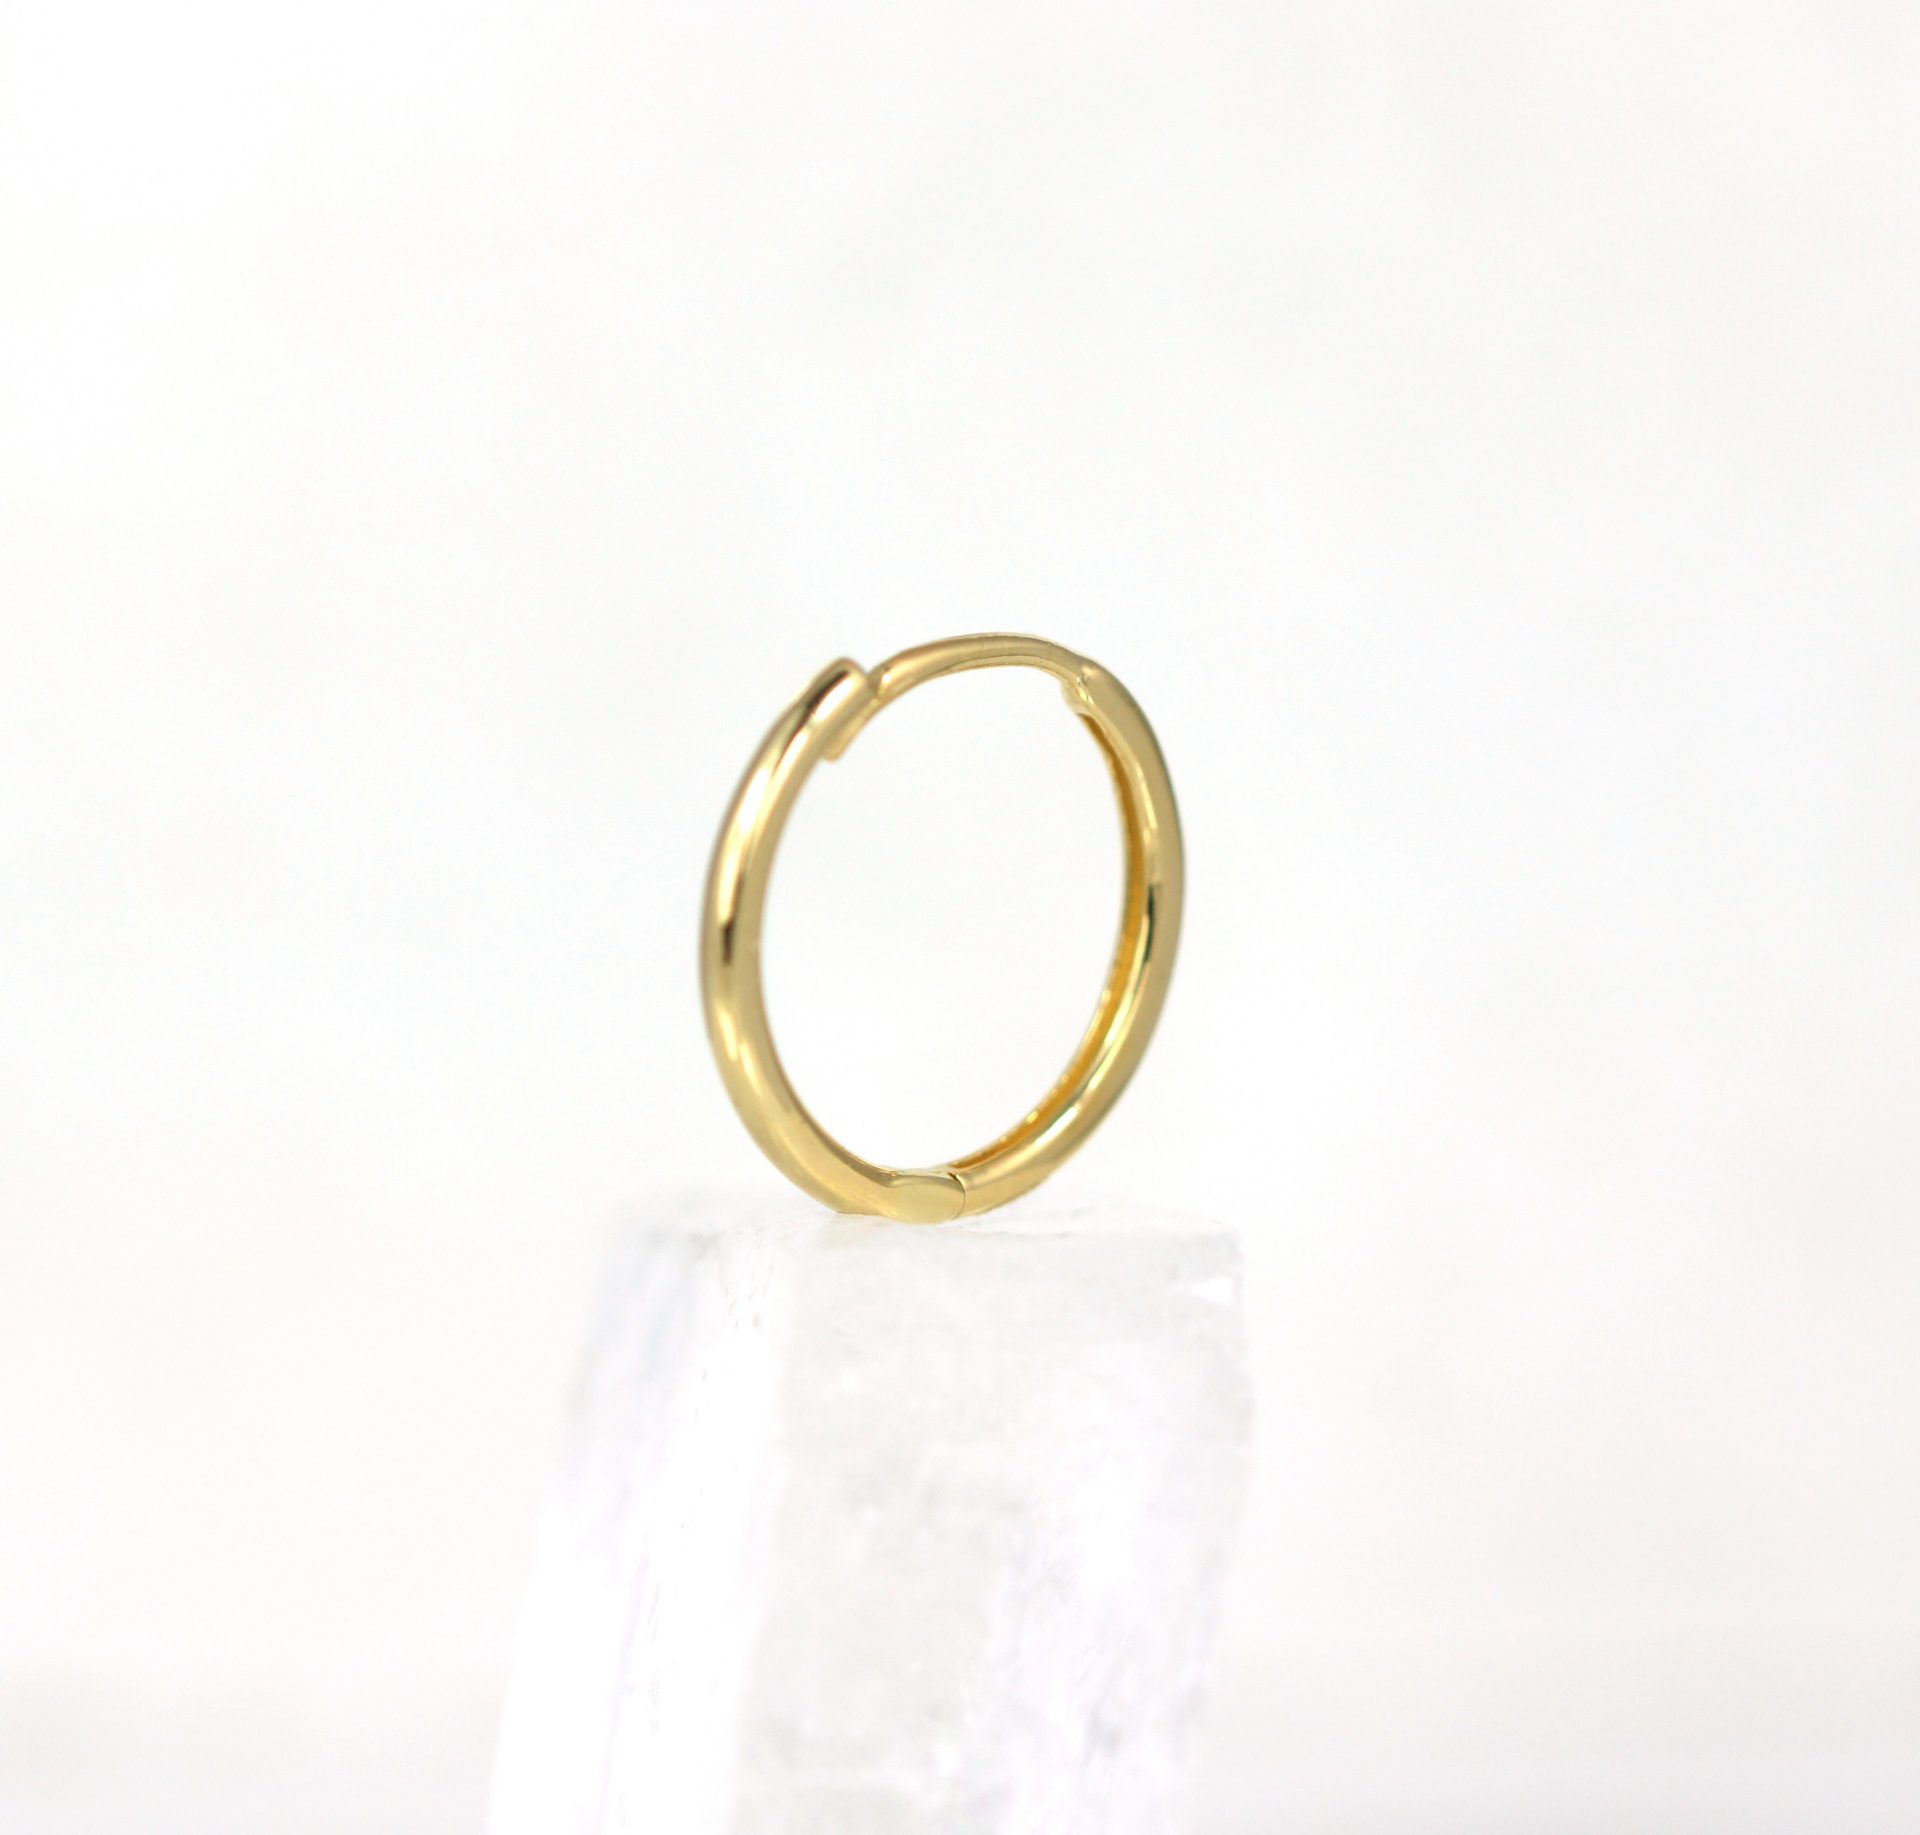 Huggie-Hoop-Earrings-Luxury-Piercing-Lena-Cohen-London-18k-Solid-Yellow-Gold-